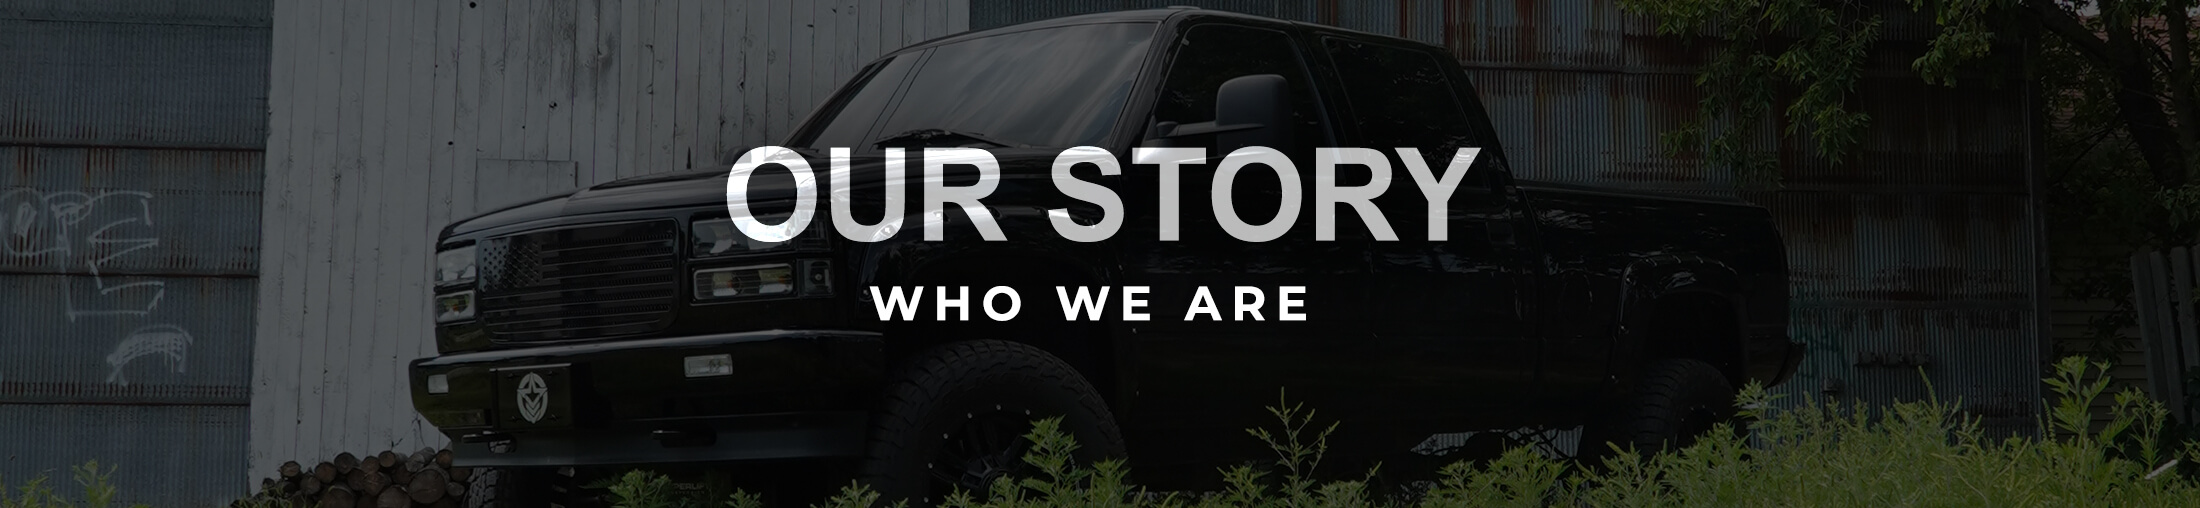 Our Story - Anthem Off-Road